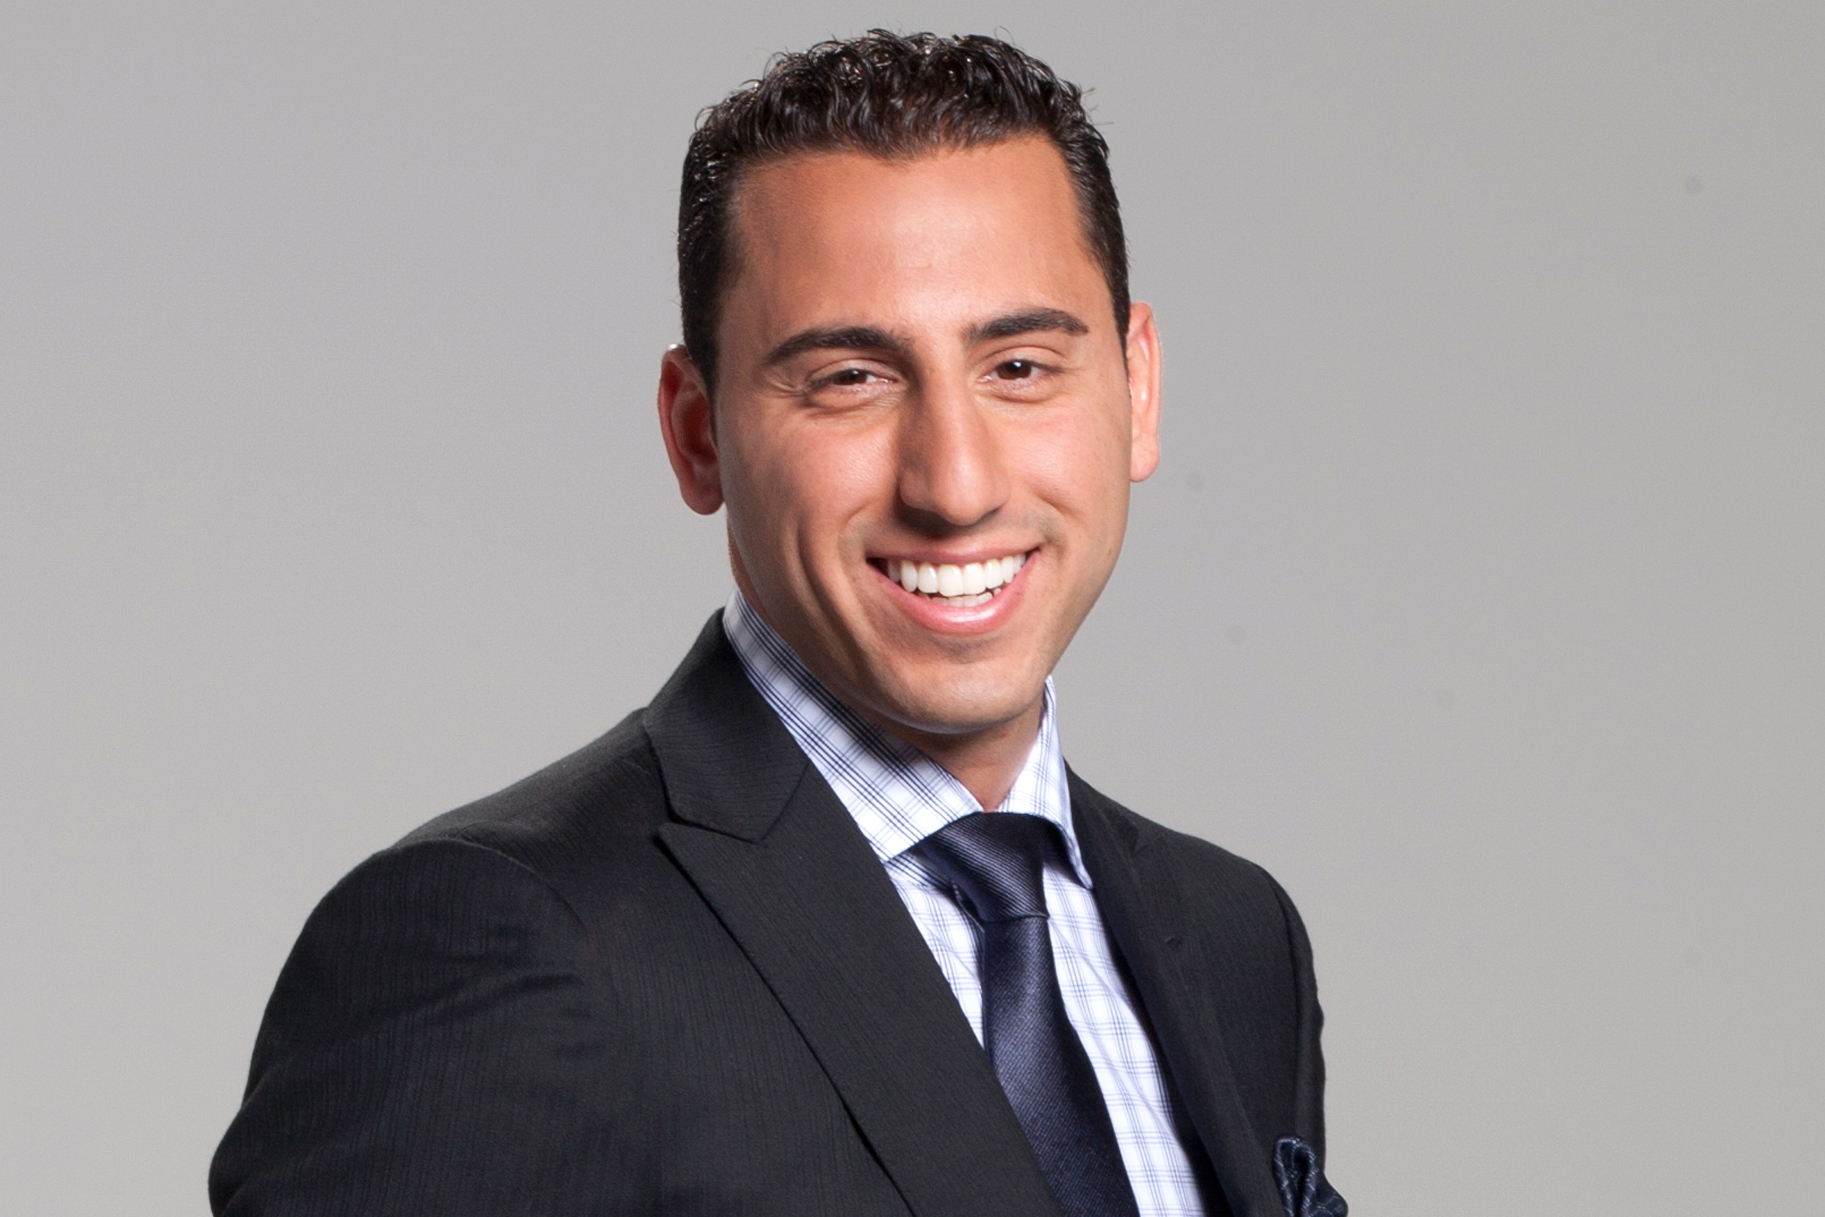 Josh Altman television personality and real estate agent in LA